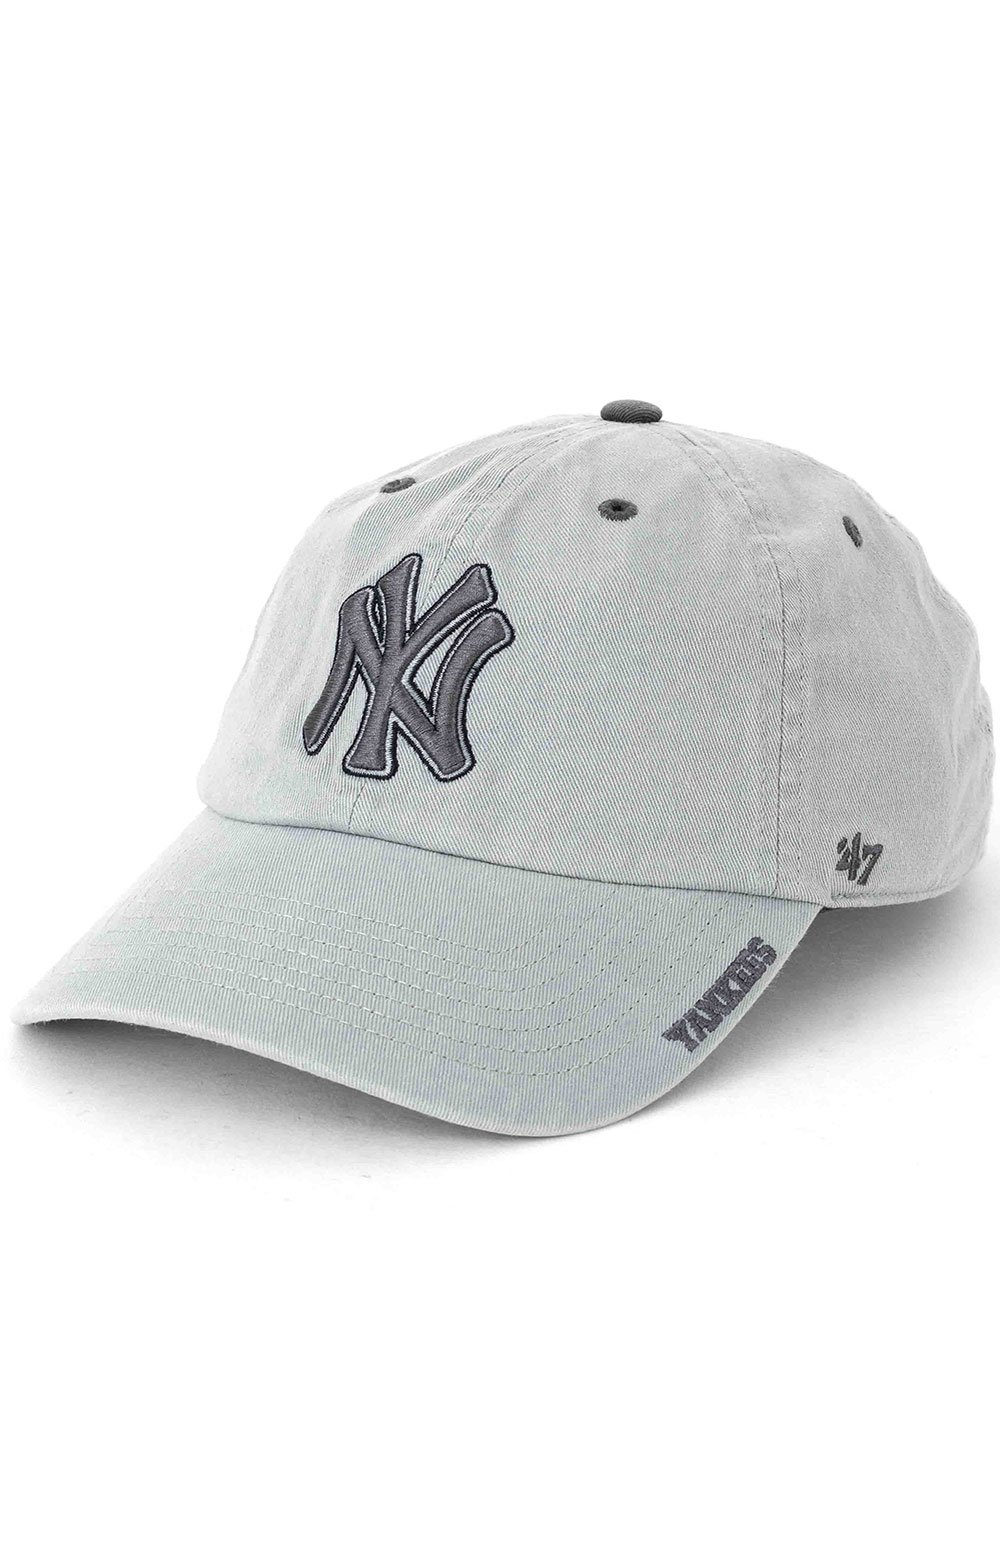 New York Yankees 47 Clean Up Cap - Storm Ice